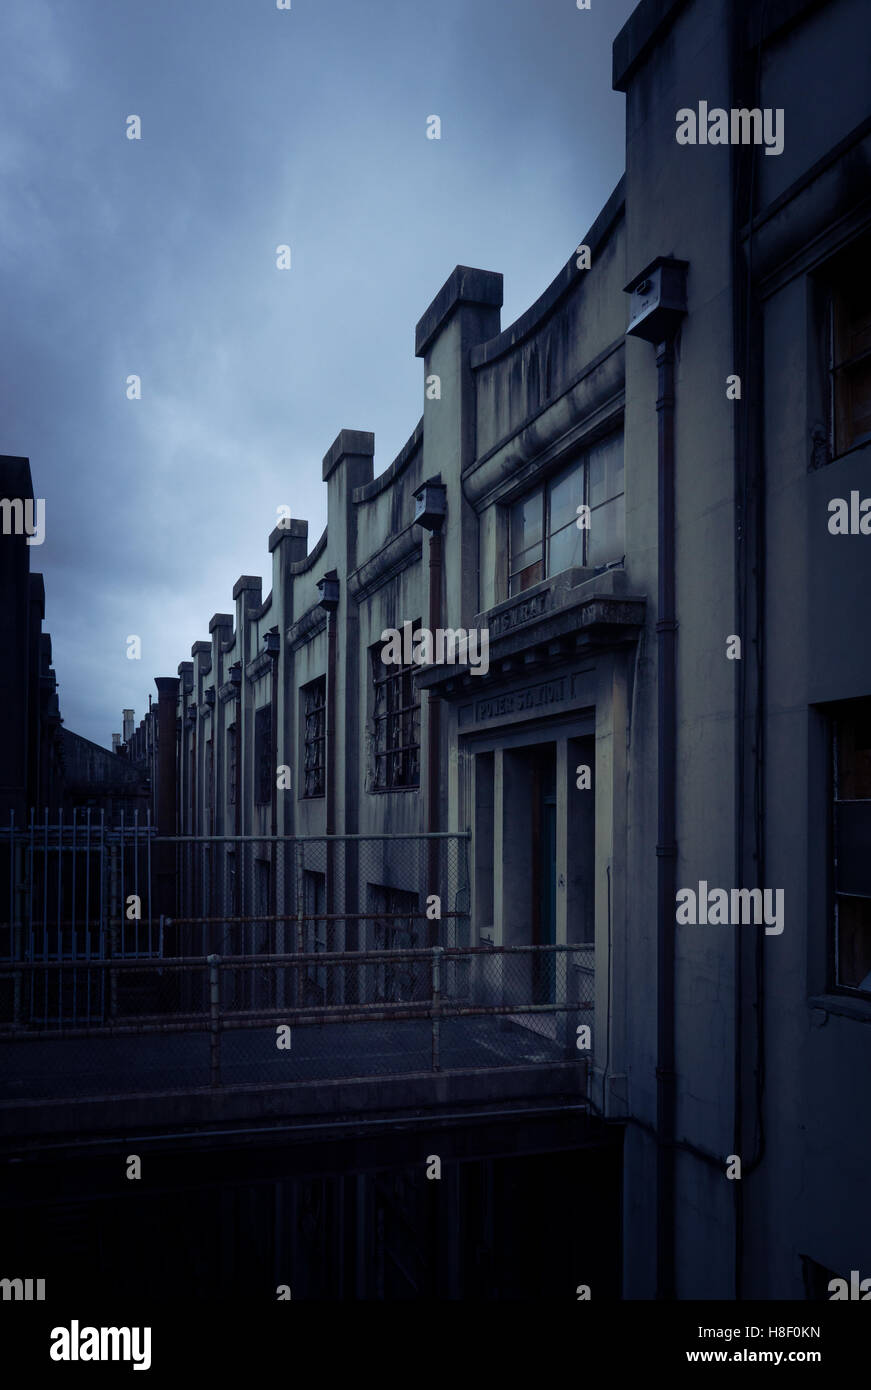 An old industrial building looking dark and foreboding - Stock Image